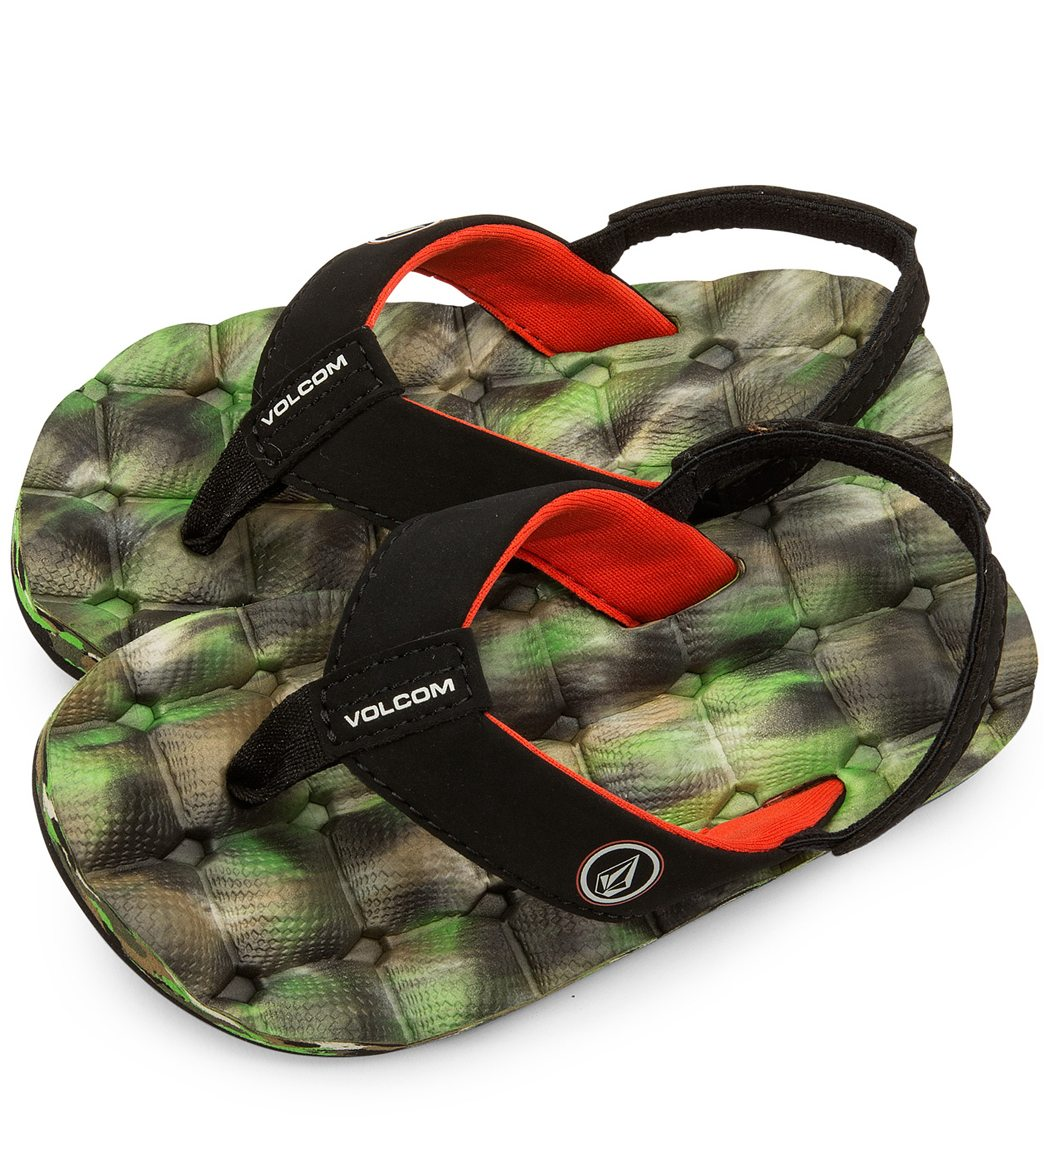 72eb44d330b0 Volcom Boys  Recliner Sandal (Little Kid) at SwimOutlet.com